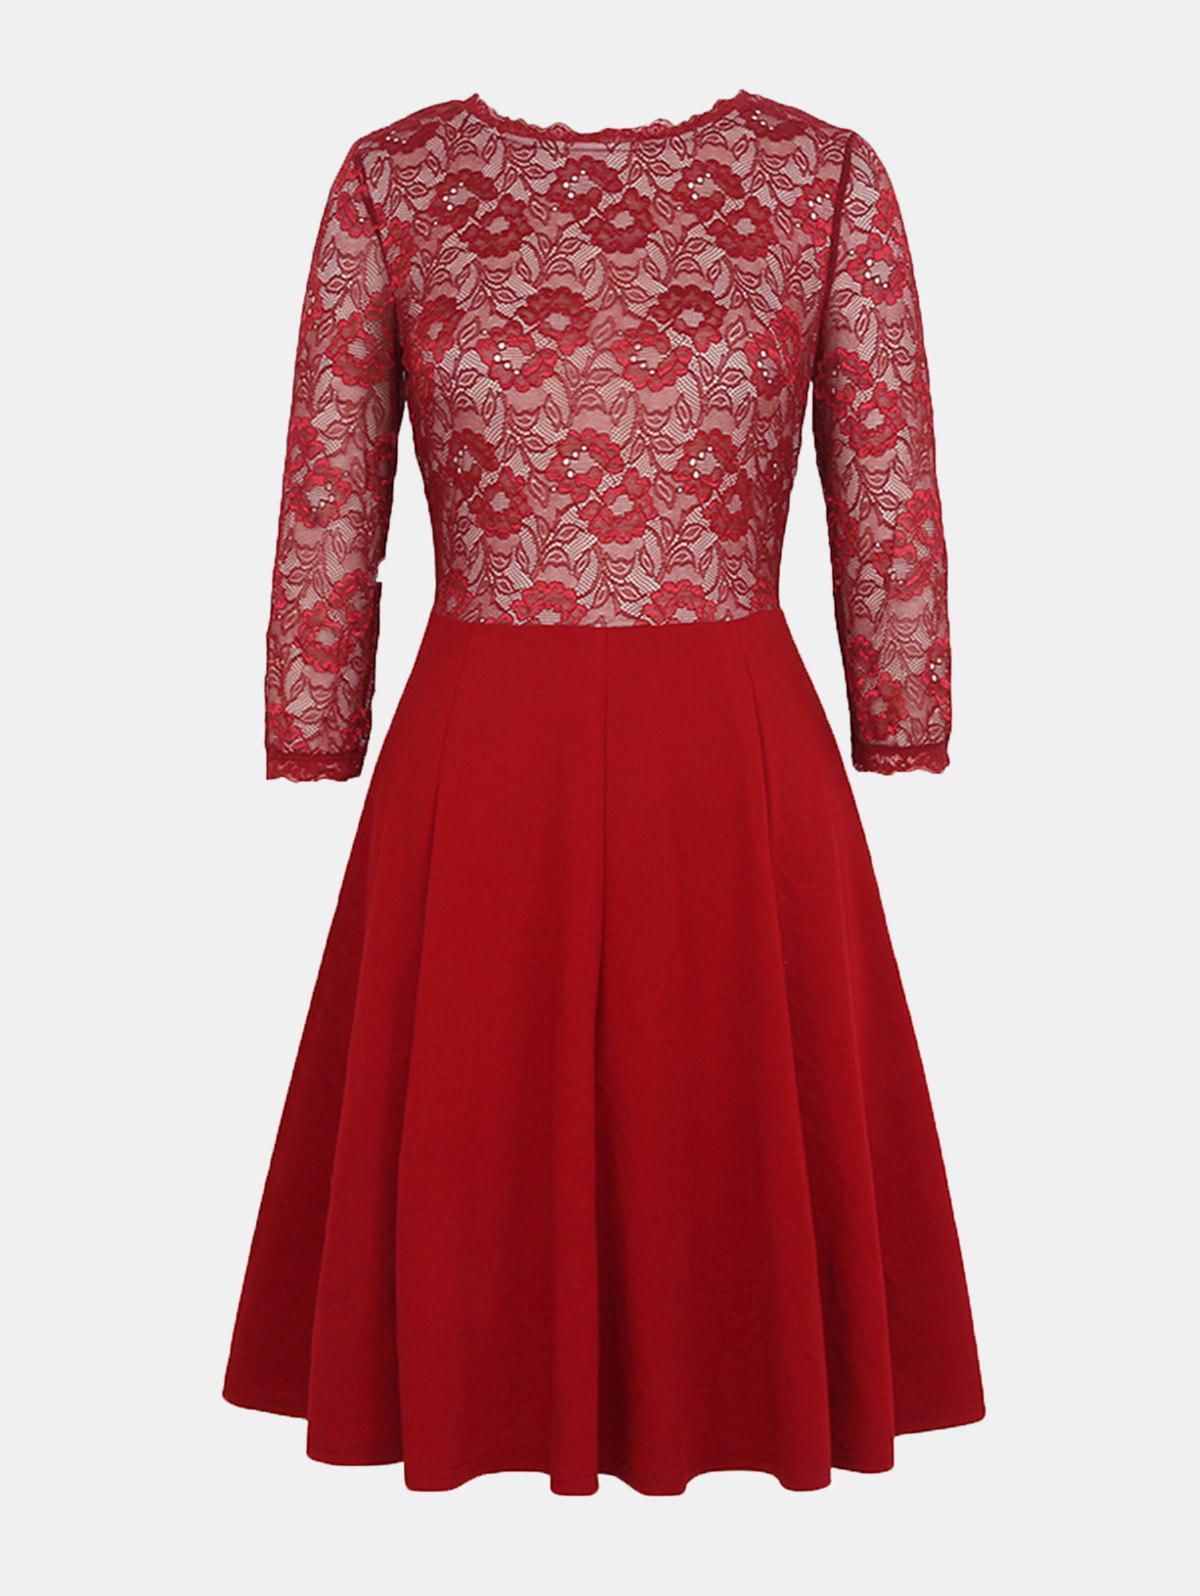 Lace Patchwork Round Collar 7 Point Sleeve A-line Dress - LAVA RED 4XL